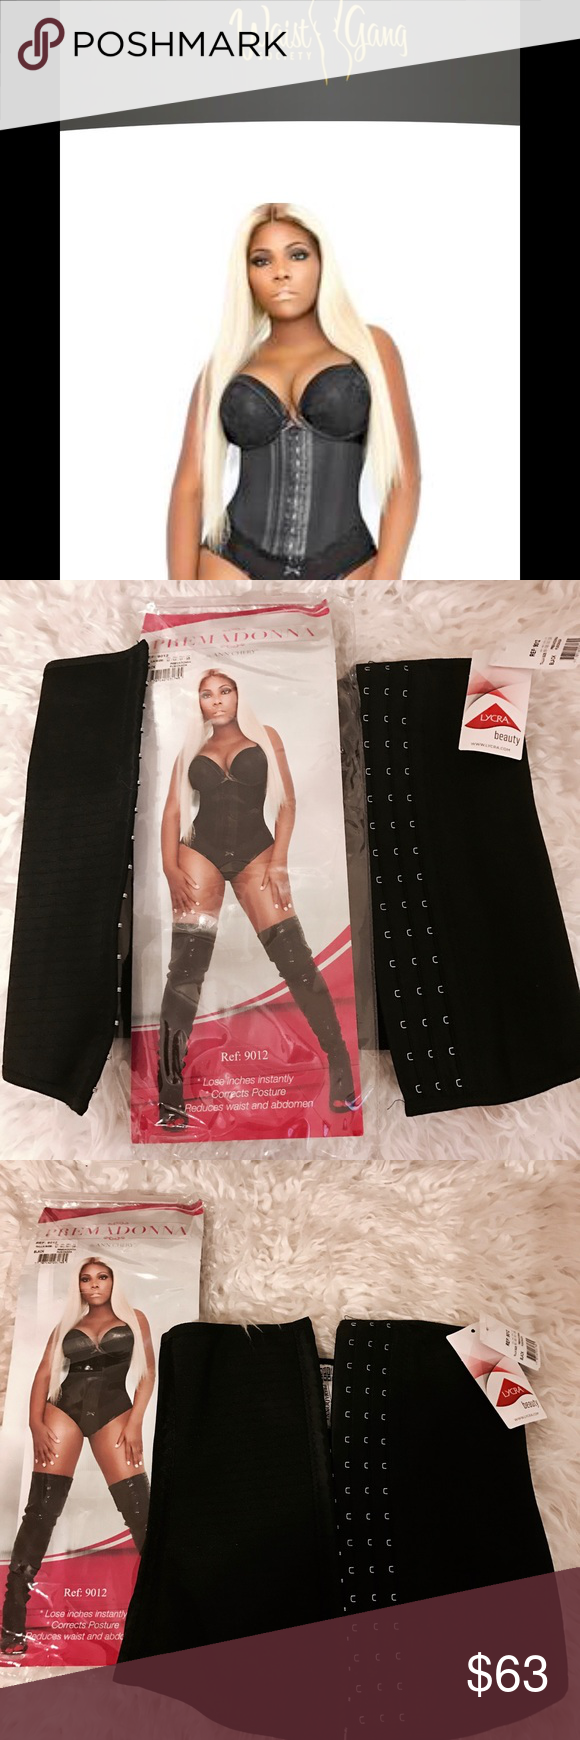 6e01636546 NWT❤️Waist Gang Society Premadonna Waist Trainer M Waist Trainers that keep  you sexy and